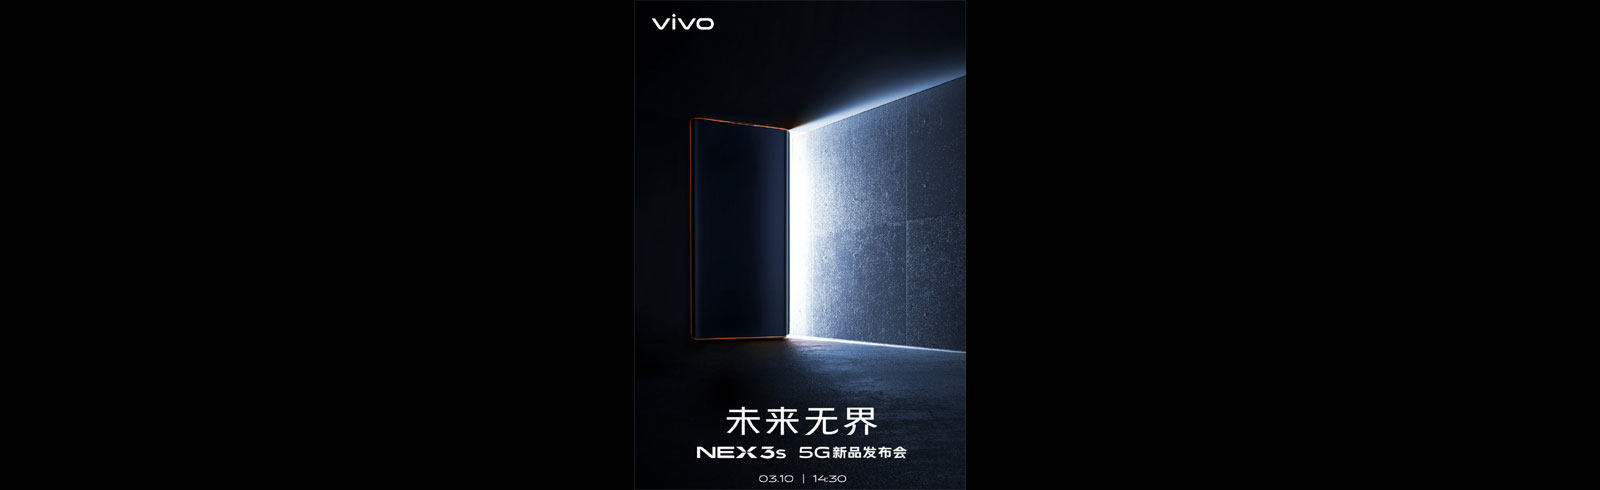 Vivo NEX 3s 5G will be unveiled on March 10